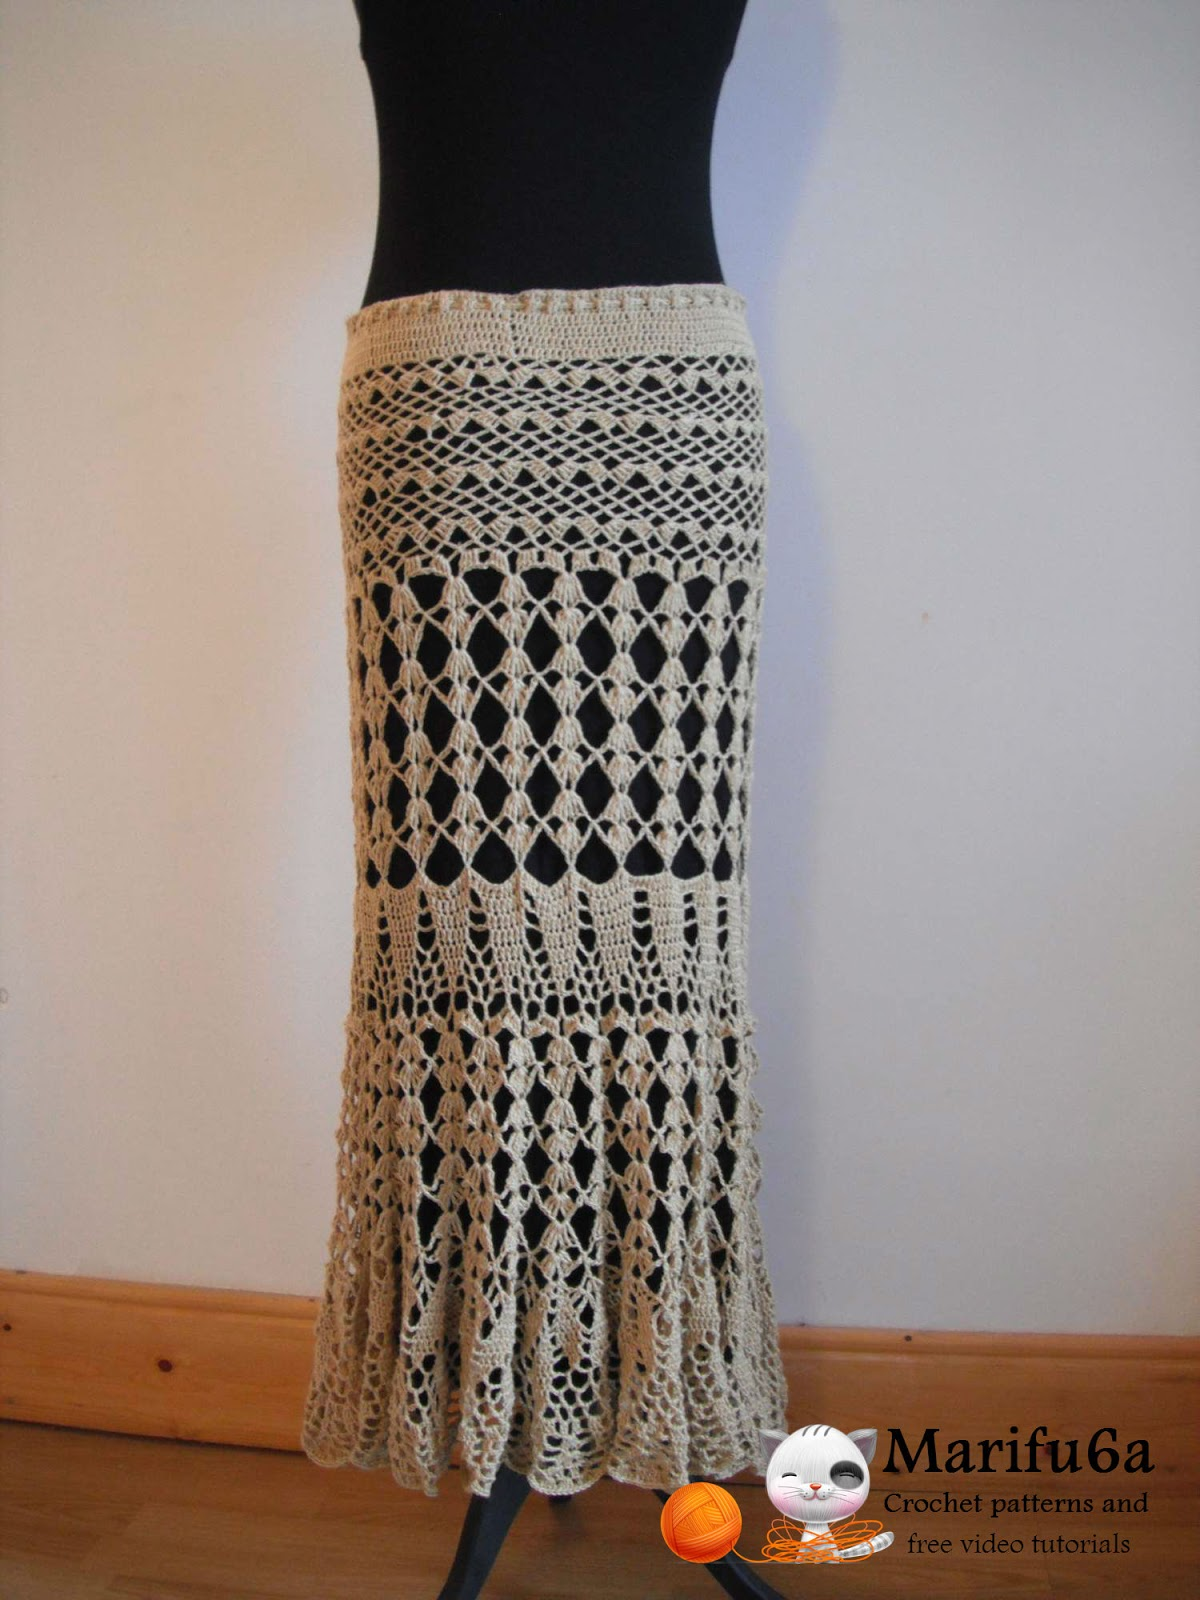 Free crochet patterns and video tutorials: How to crochet maxi skirt